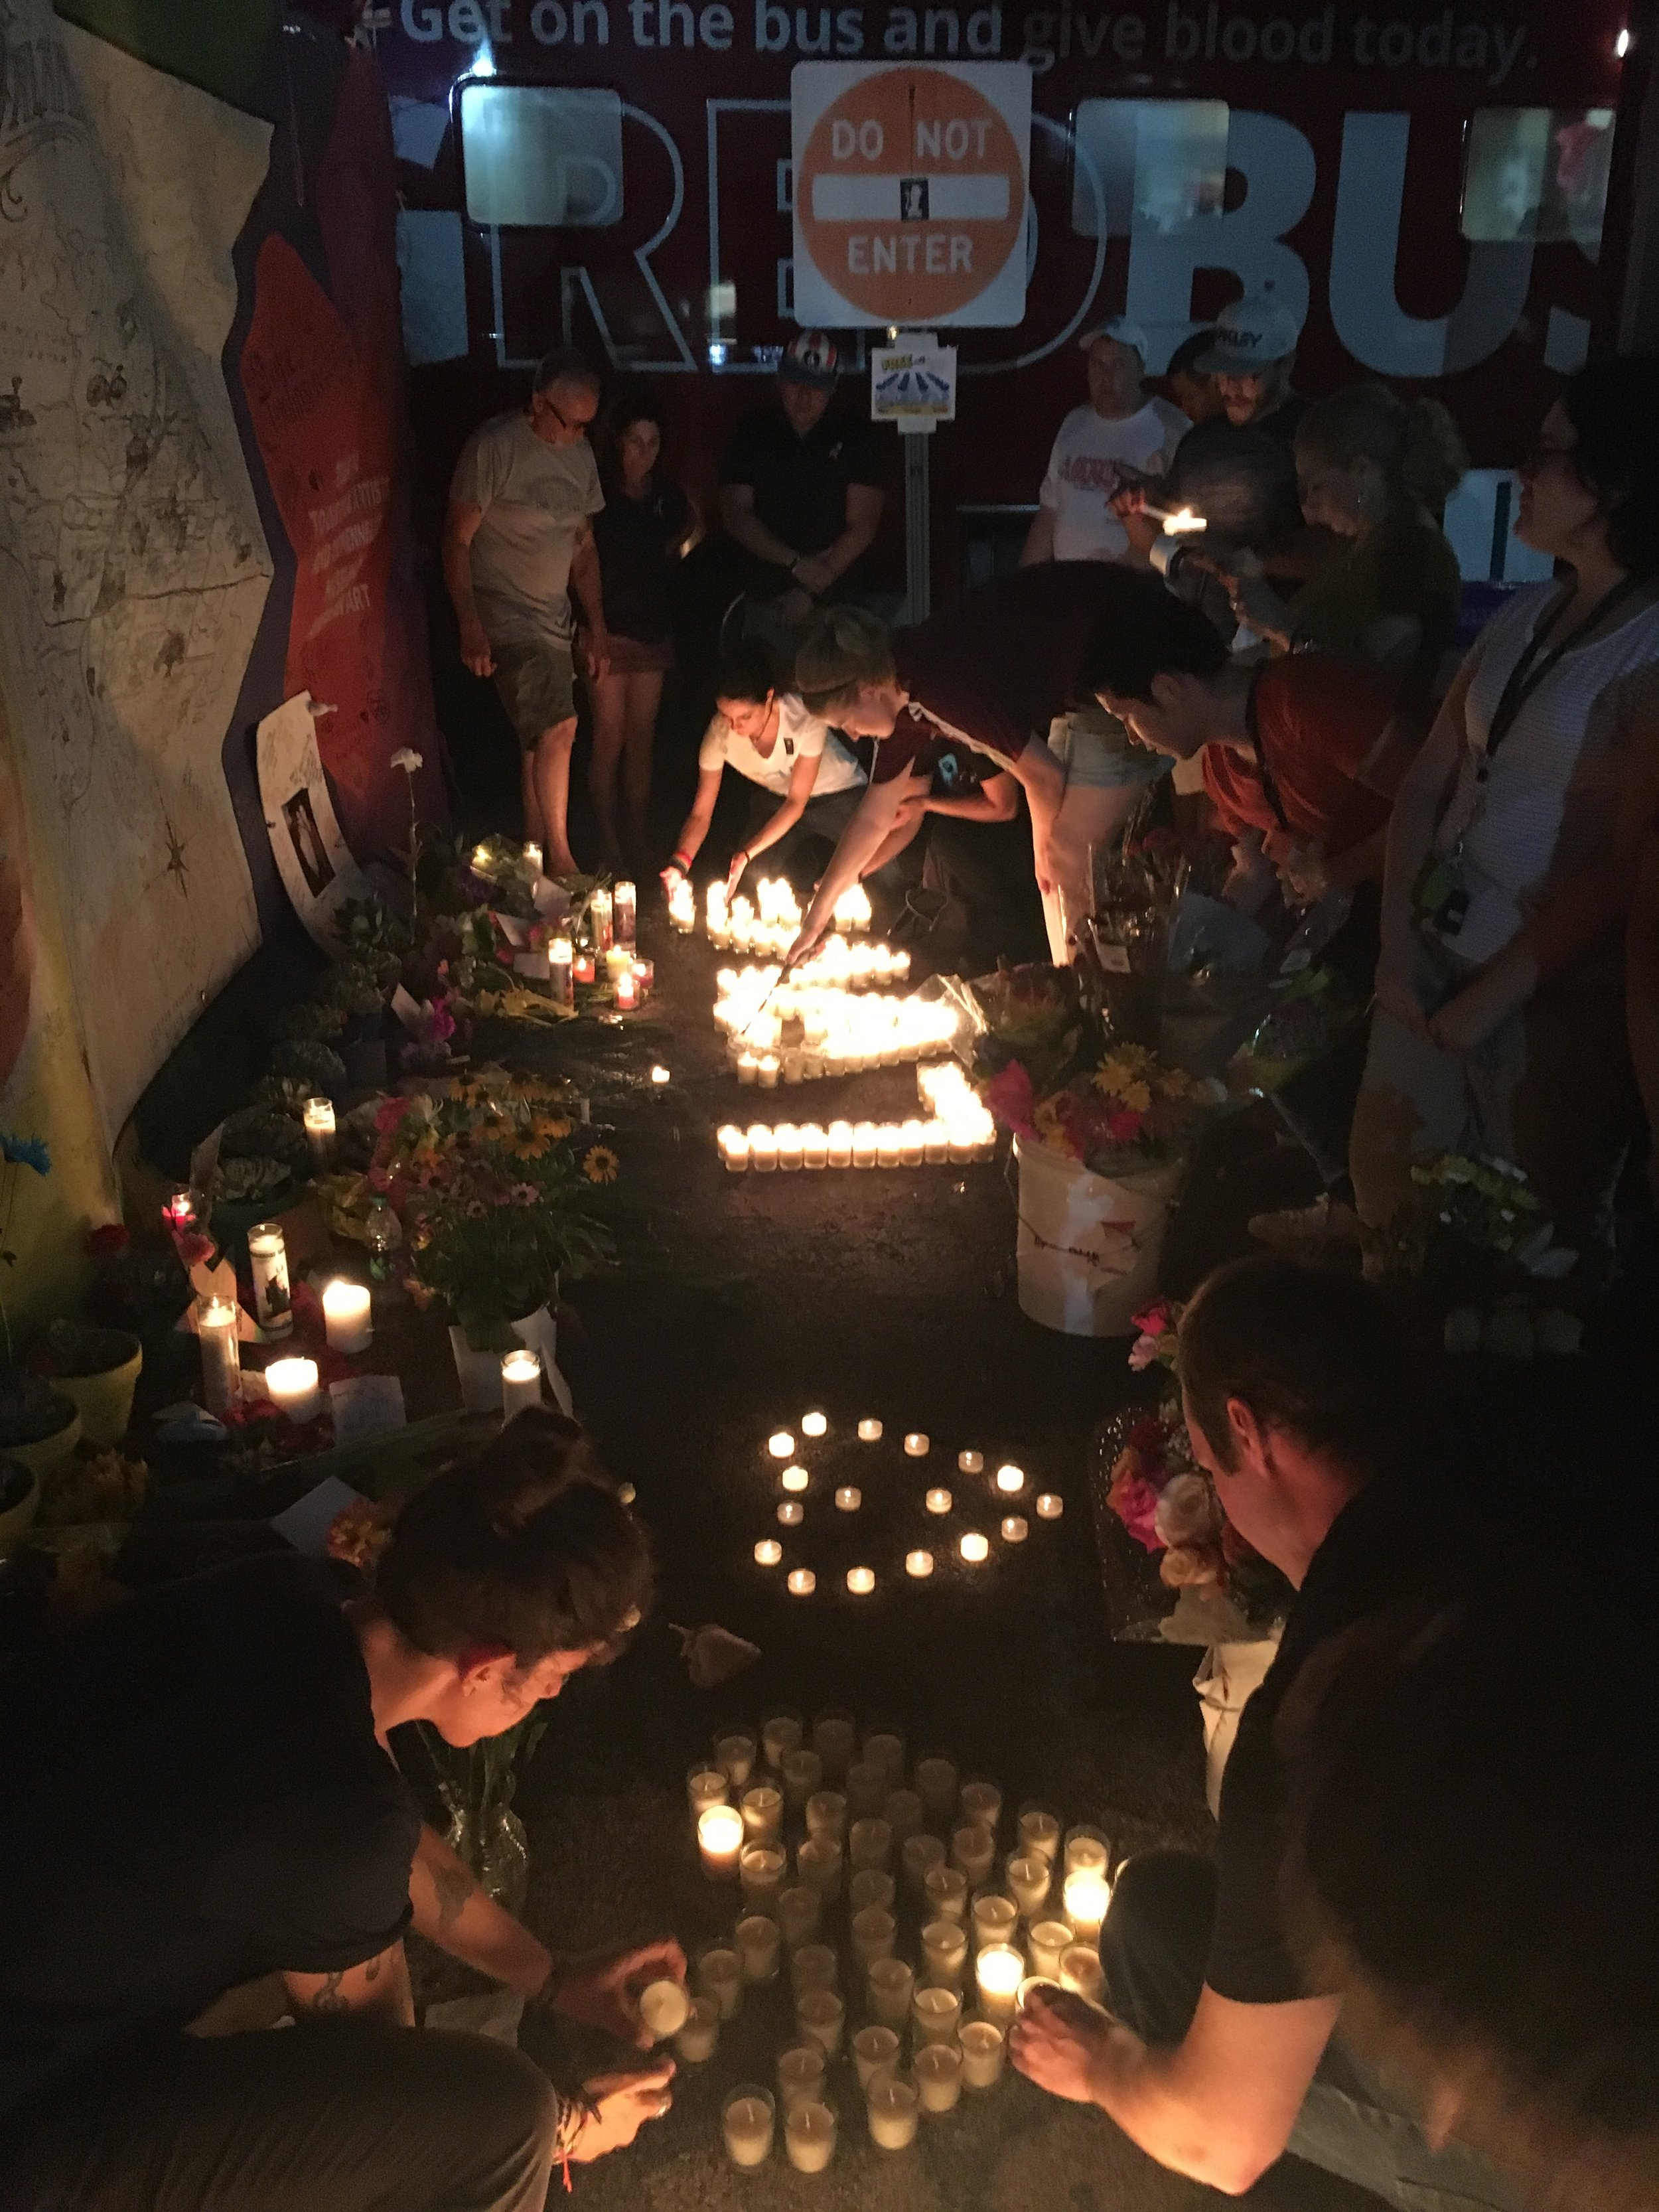 Pictured Above: Our team at the Pulse Nightclub arranging candles in remembrance of the victims